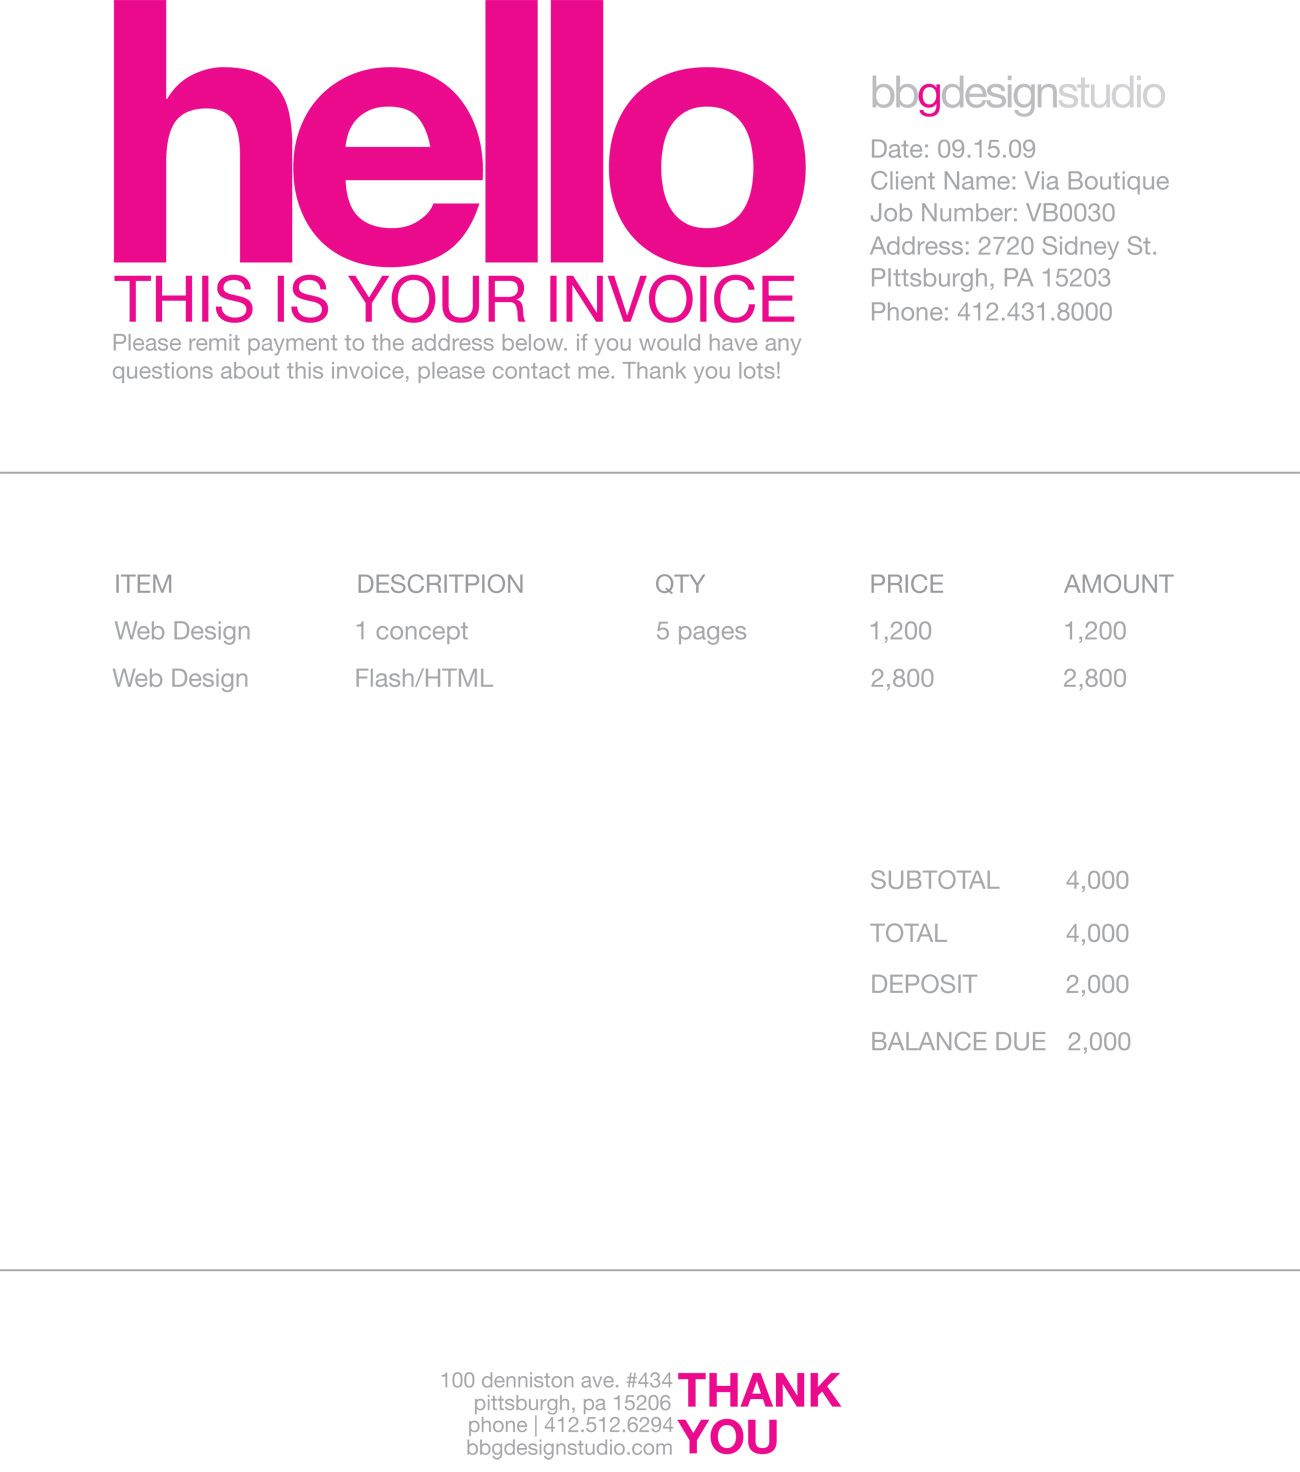 Coachoutletonlineplusus  Ravishing  Images About Invoice Design On Pinterest With Handsome Receipt And Payment Format Besides Company Receipt Format Furthermore Car Sales Receipt Template Uk With Cool Rrsp Contribution Receipt Also Receipt Template Excel Free In Addition Paypal Payment Receipt And Acknowledgement Receipt For Payment As Well As Ikea Canada Return Policy No Receipt Additionally Rent Receipt Excel Template From Pinterestcom With Coachoutletonlineplusus  Handsome  Images About Invoice Design On Pinterest With Cool Receipt And Payment Format Besides Company Receipt Format Furthermore Car Sales Receipt Template Uk And Ravishing Rrsp Contribution Receipt Also Receipt Template Excel Free In Addition Paypal Payment Receipt From Pinterestcom